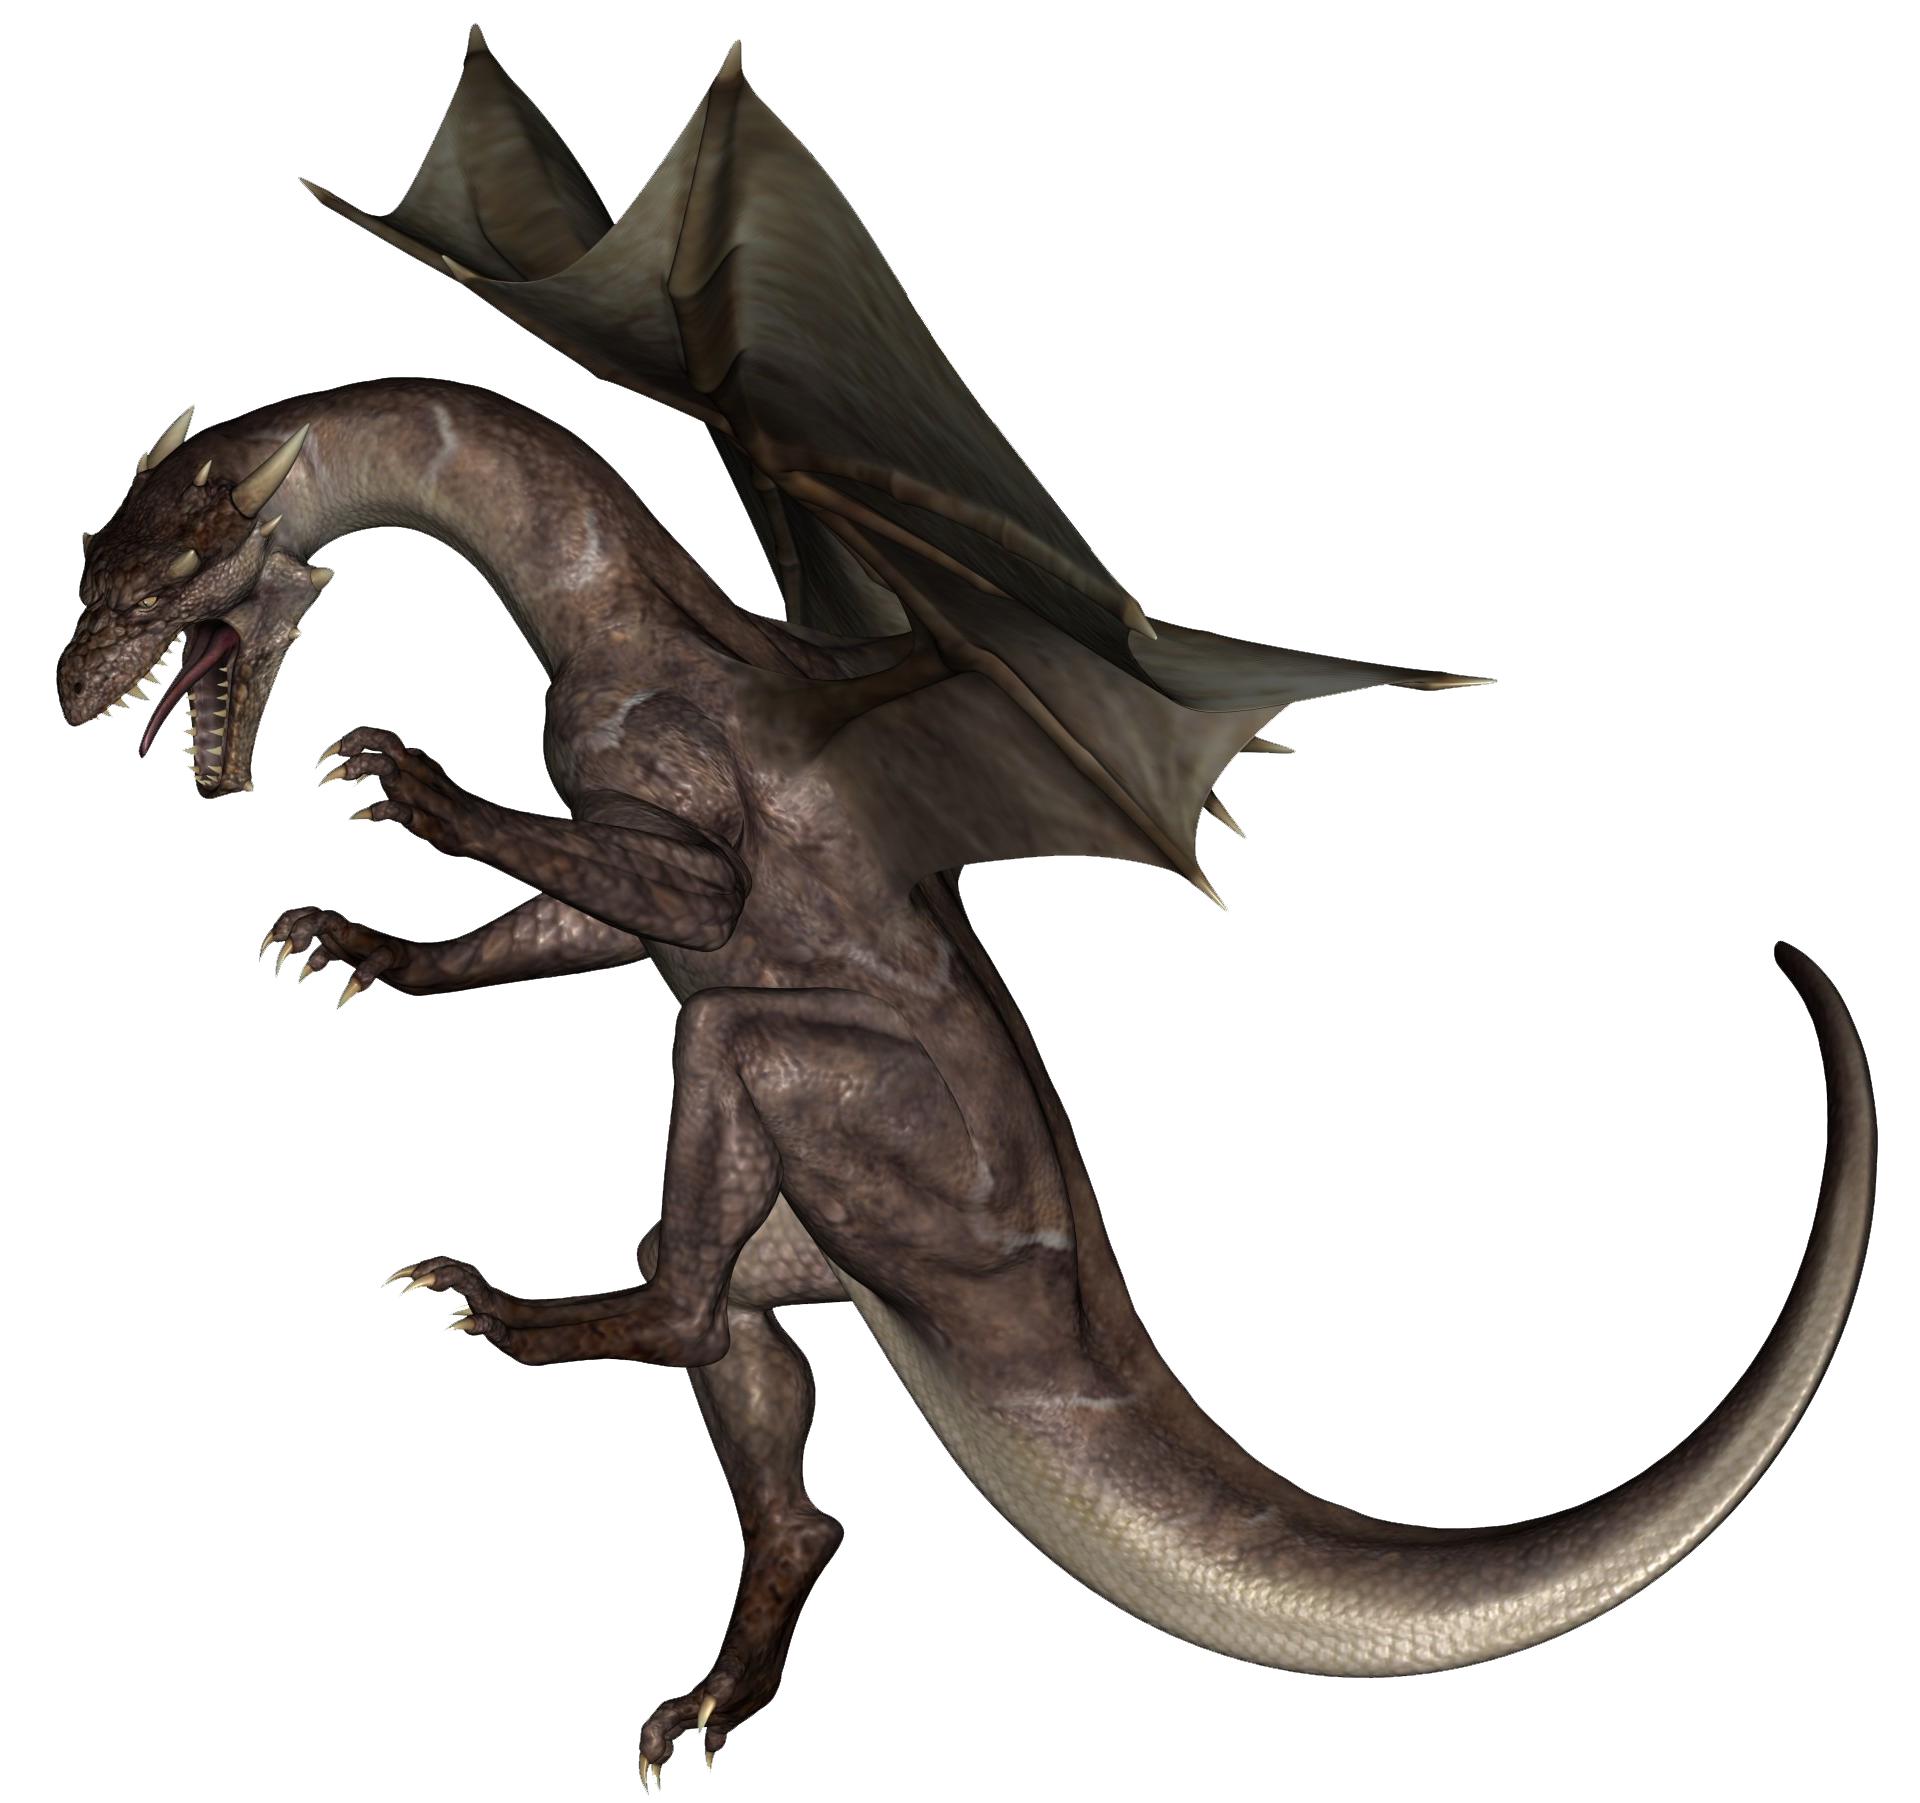 Dragon PNG Image - Dragon PNG